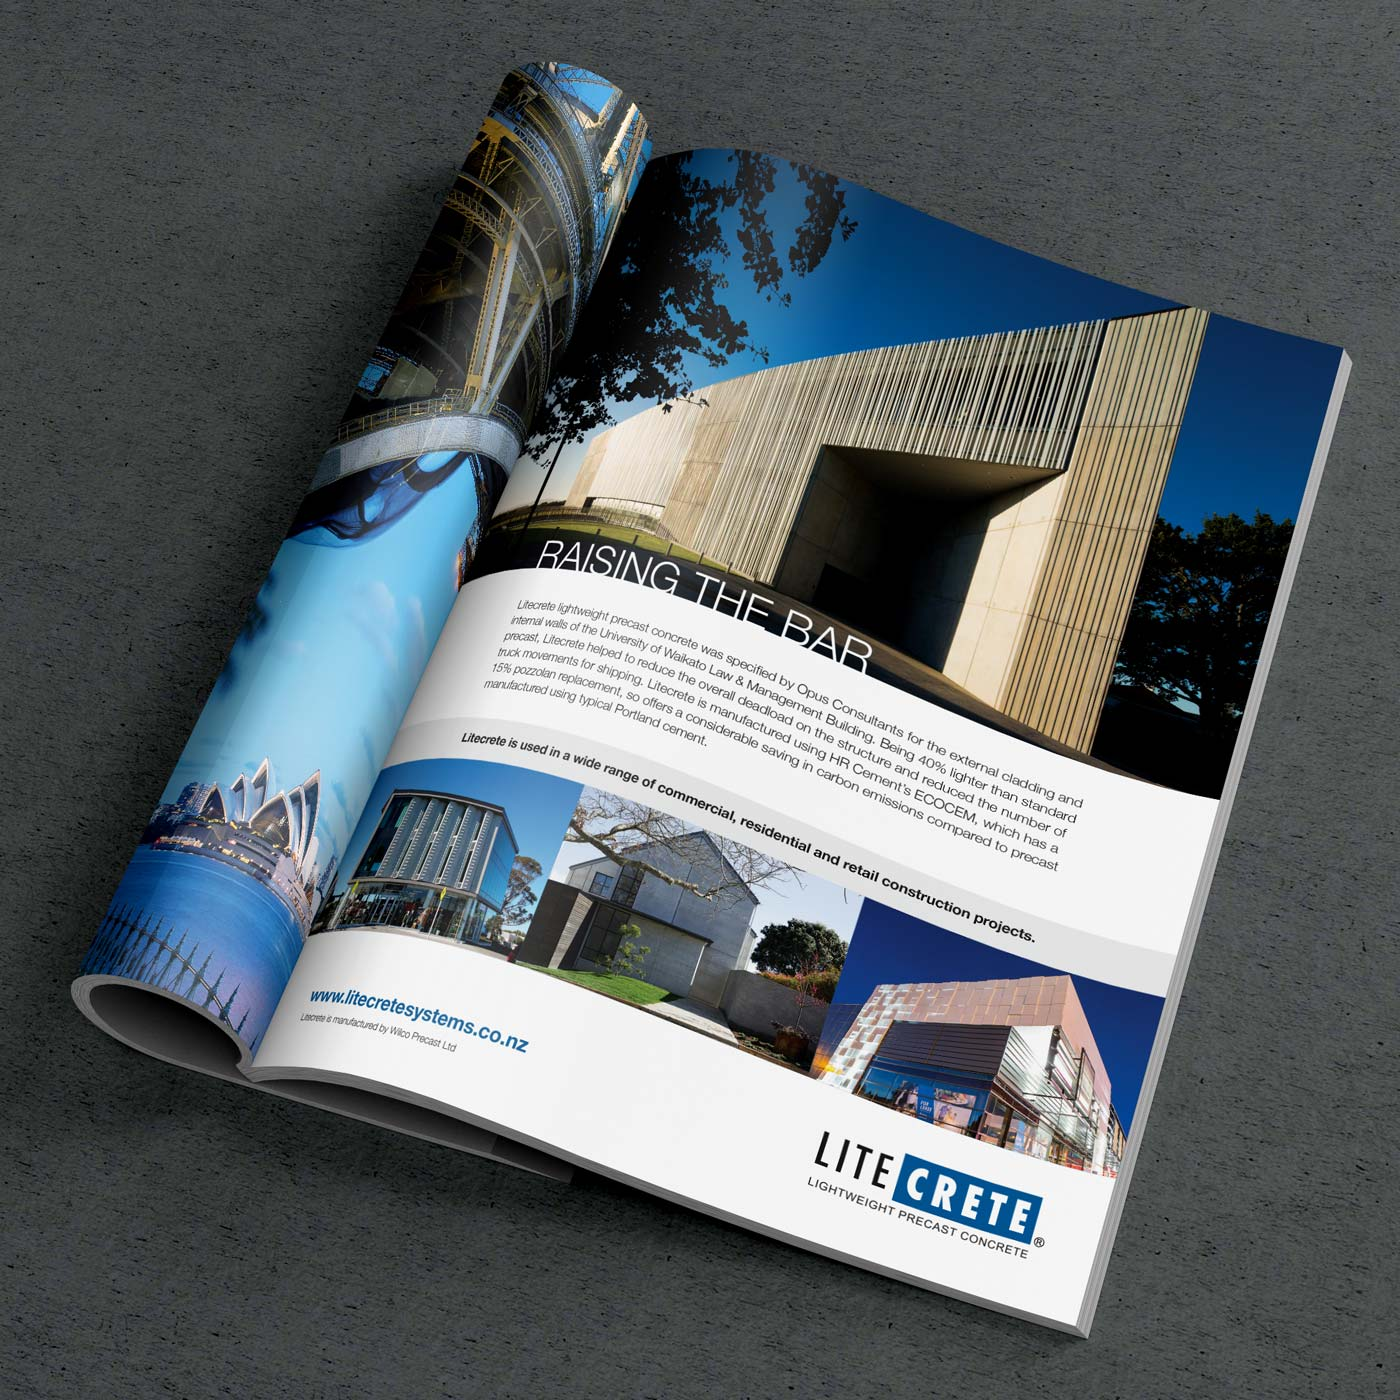 magazine advertising graphic design for litecrete